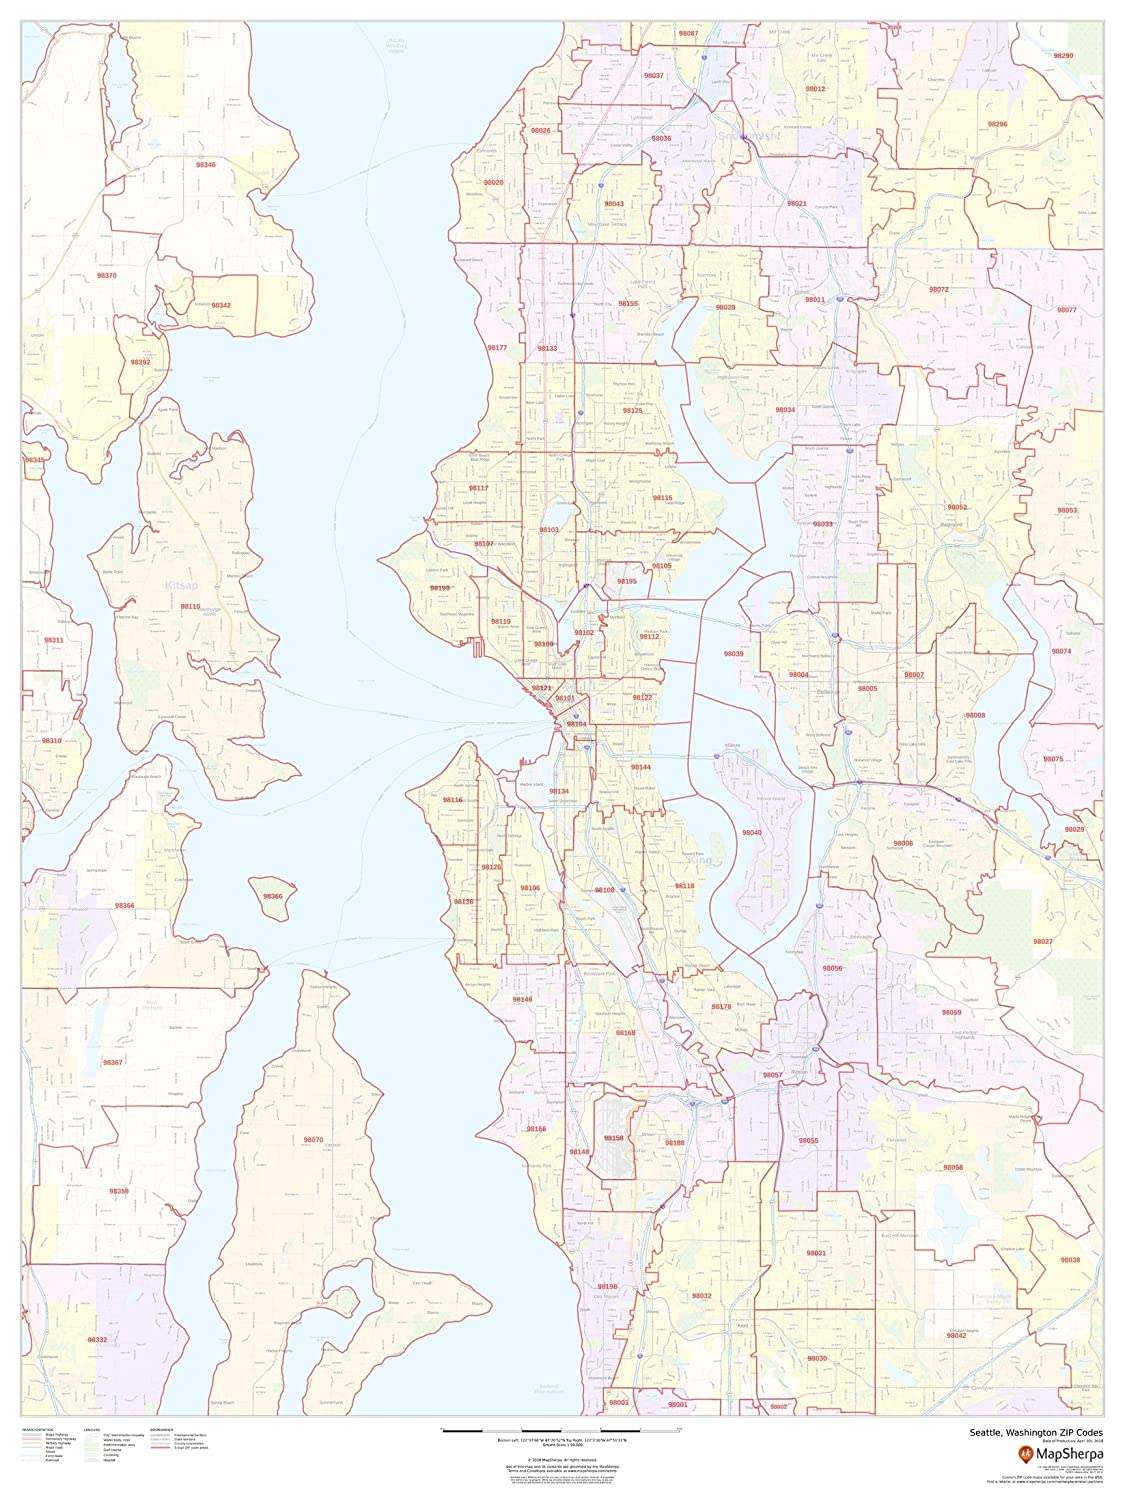 Amazon.com : Seattle, Washington Zip Codes - 36